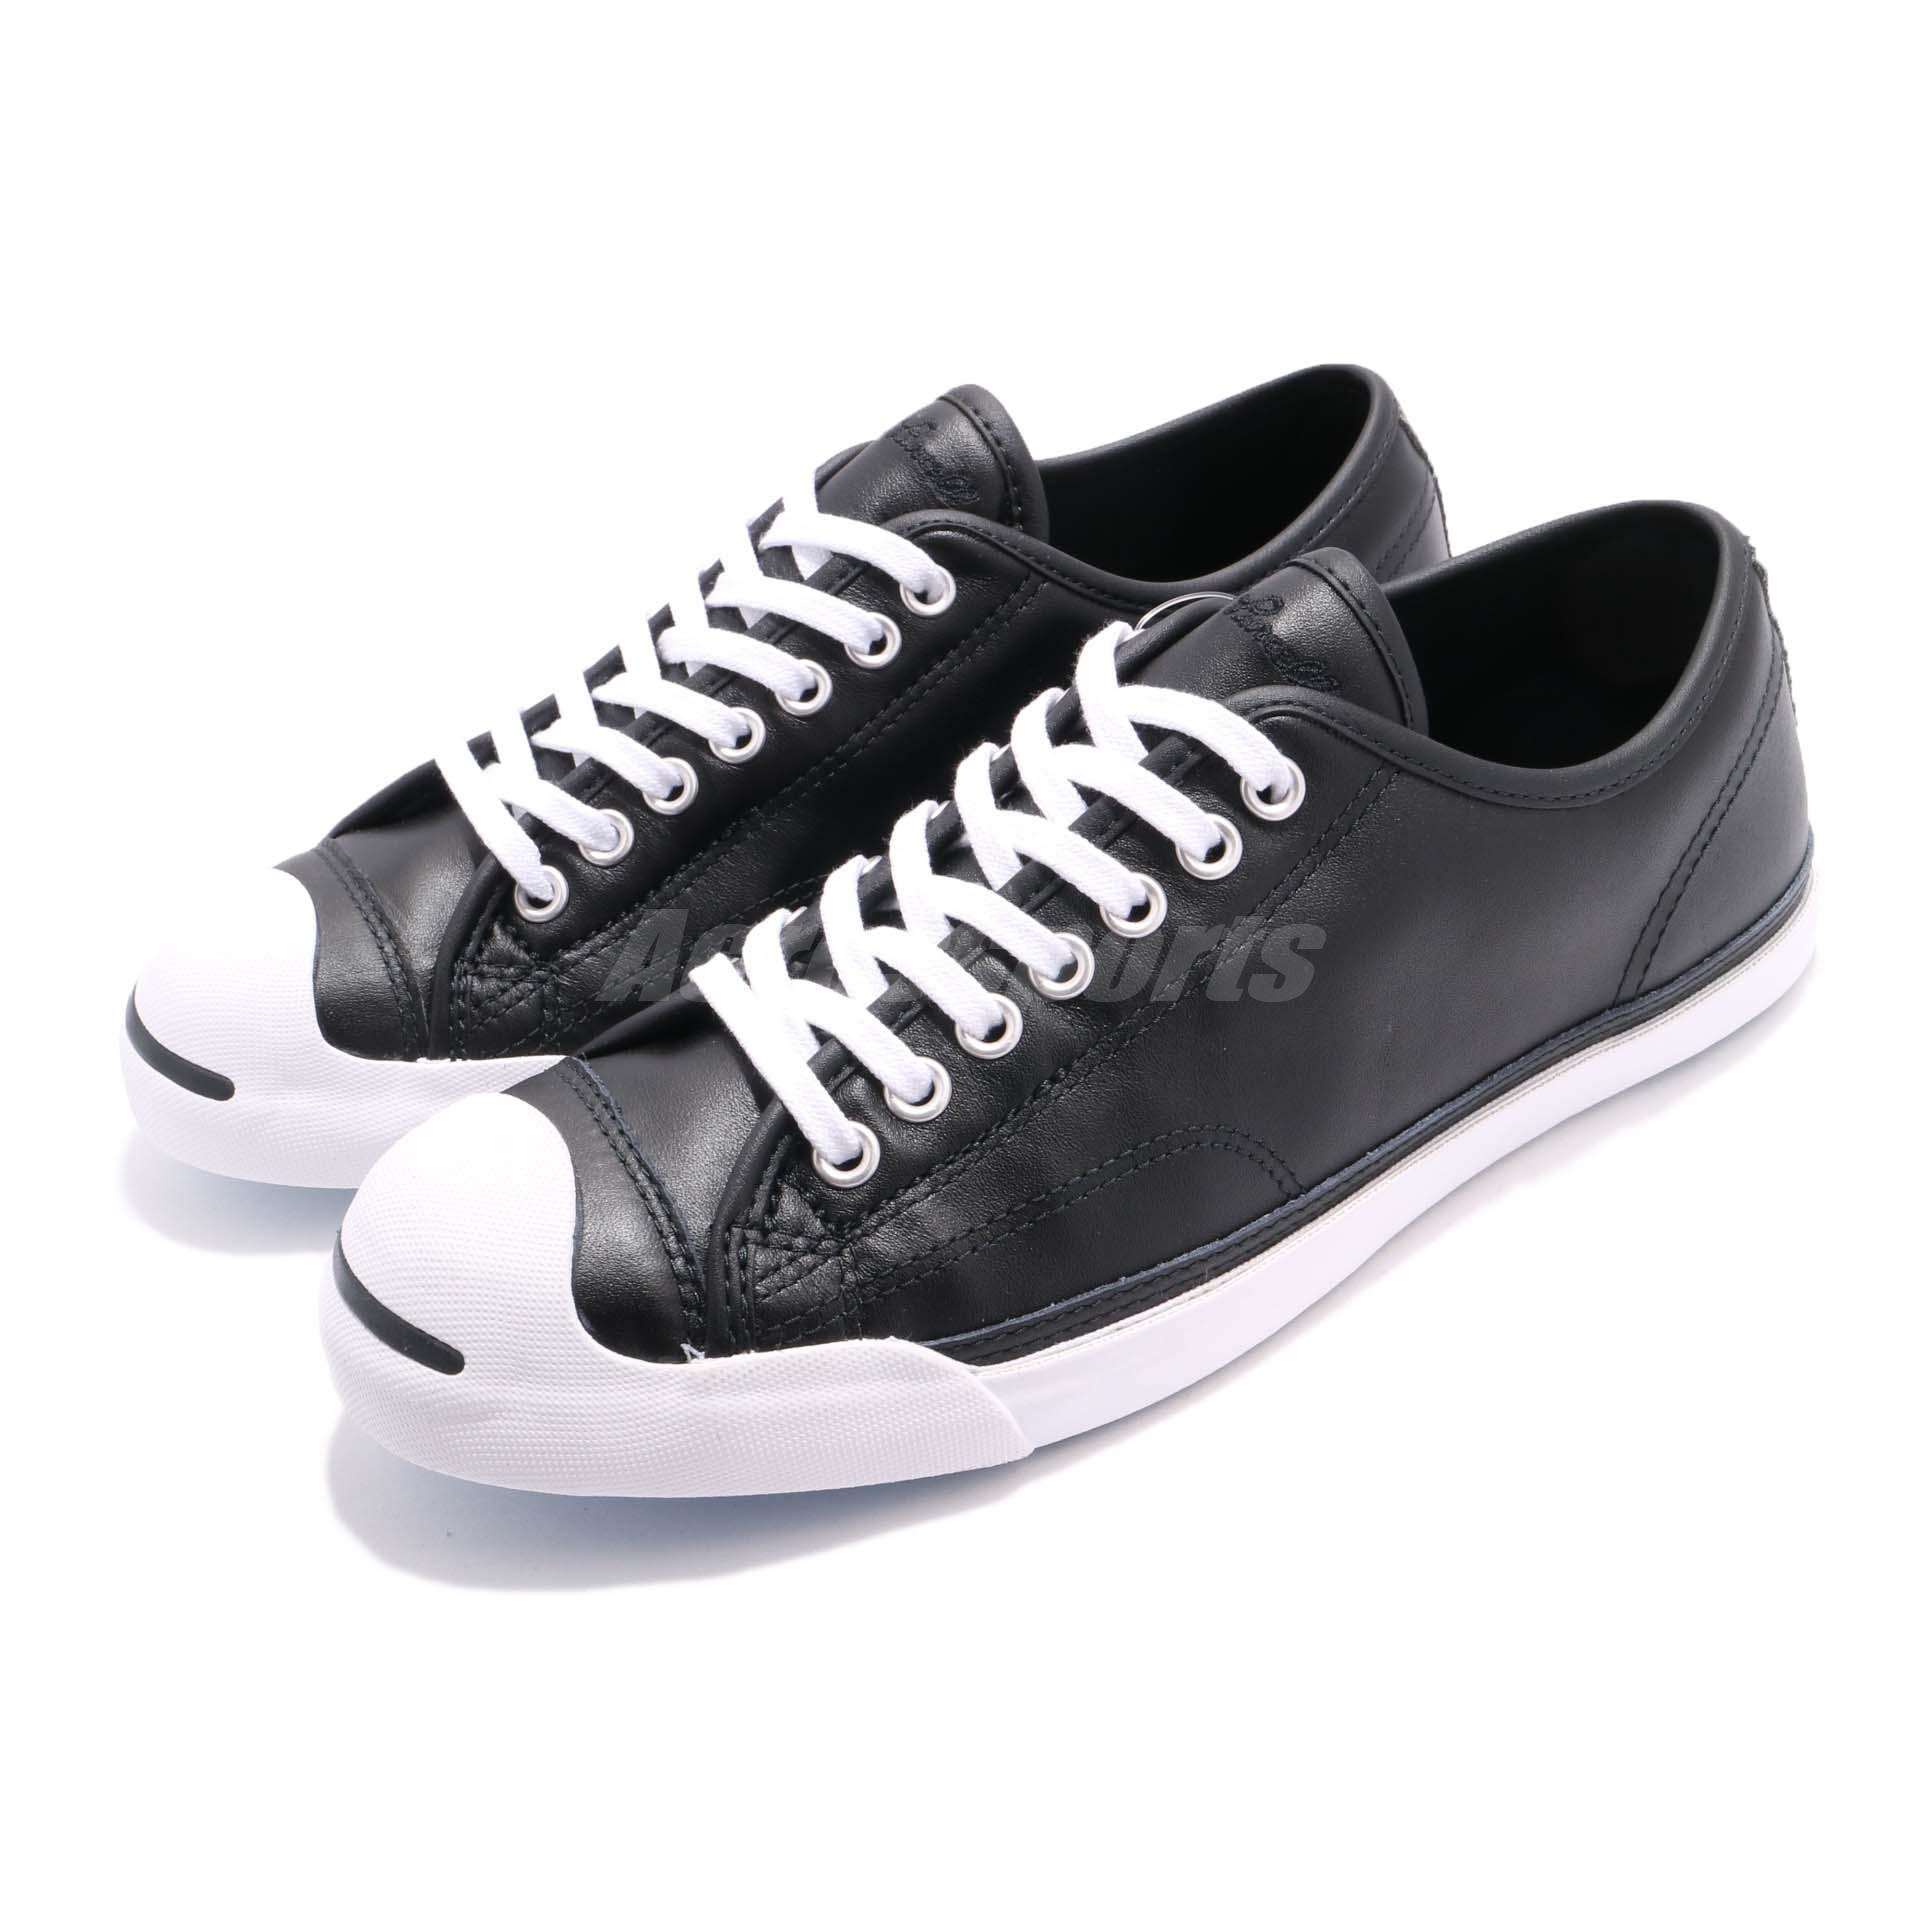 2eed9b8ccef0d2 Details about Converse Jack Purcell LP L S Low Men Classic Shoes Sneakers  158865C